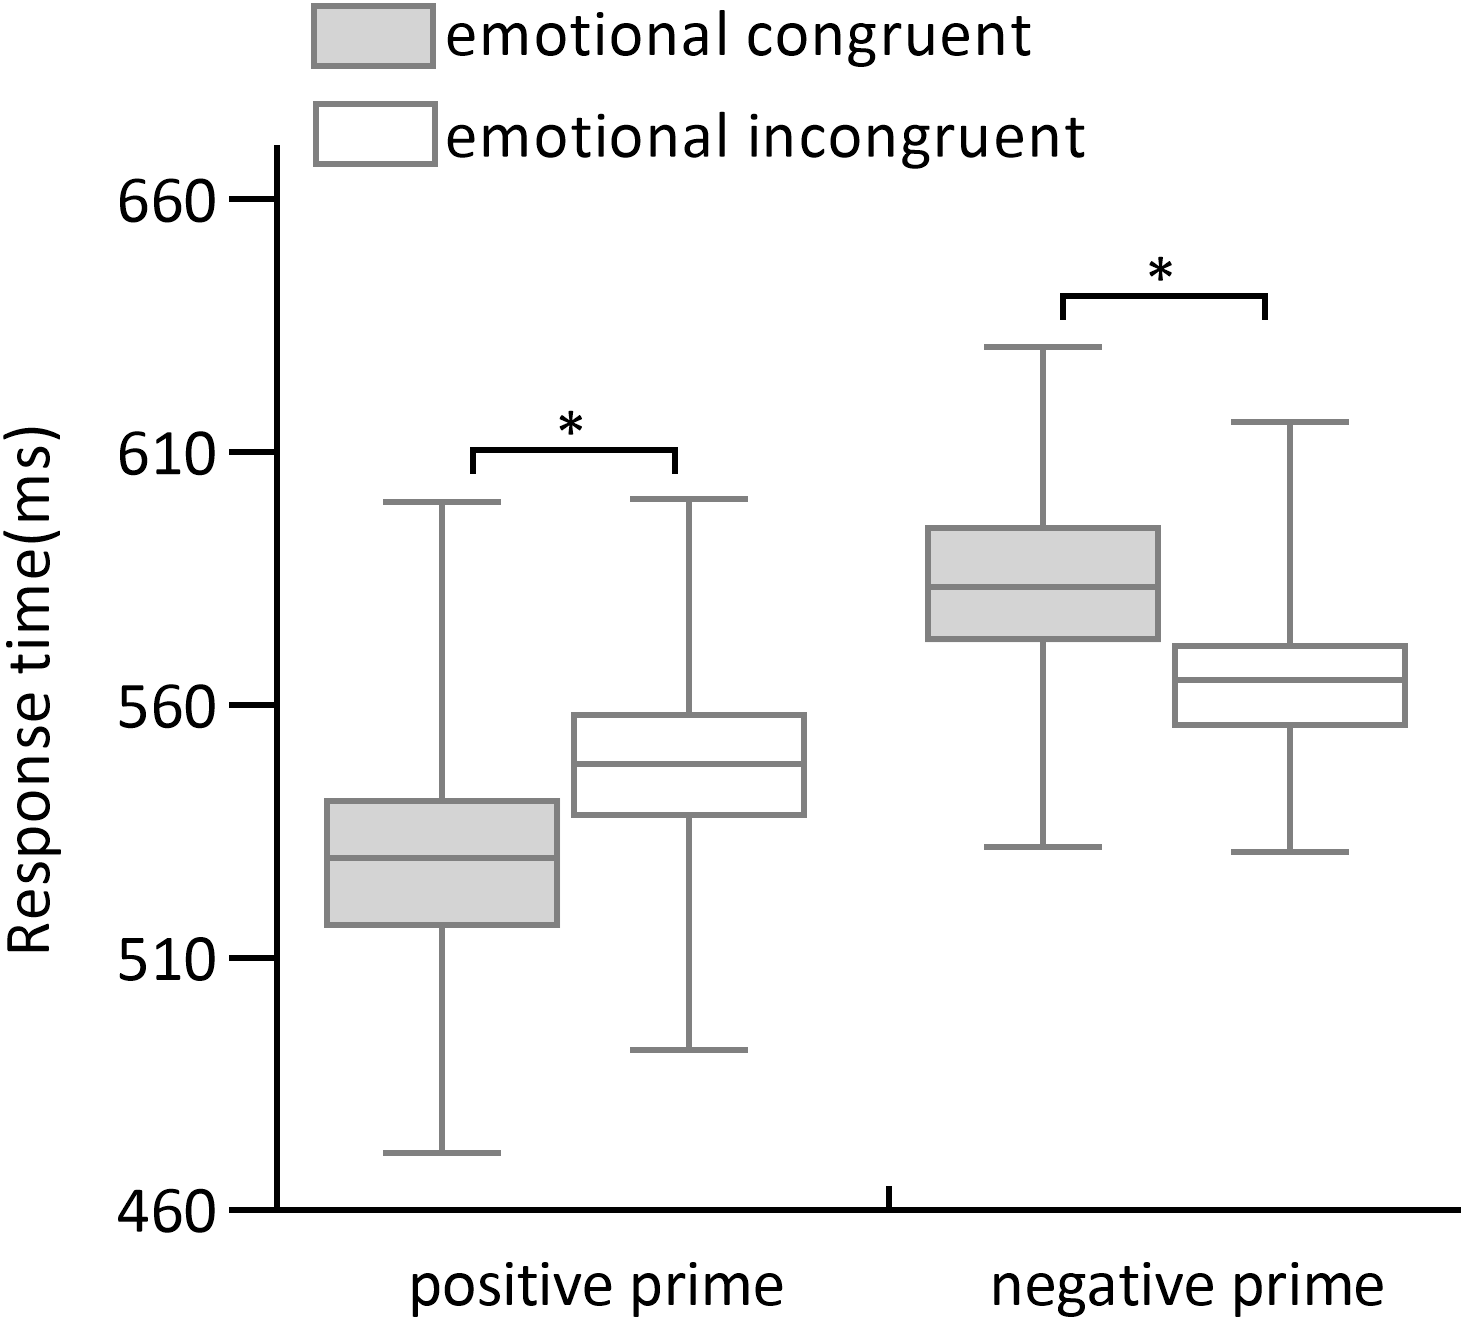 Valence Makes A Stronger Contribution Than Arousal To Affective Priming Peerj